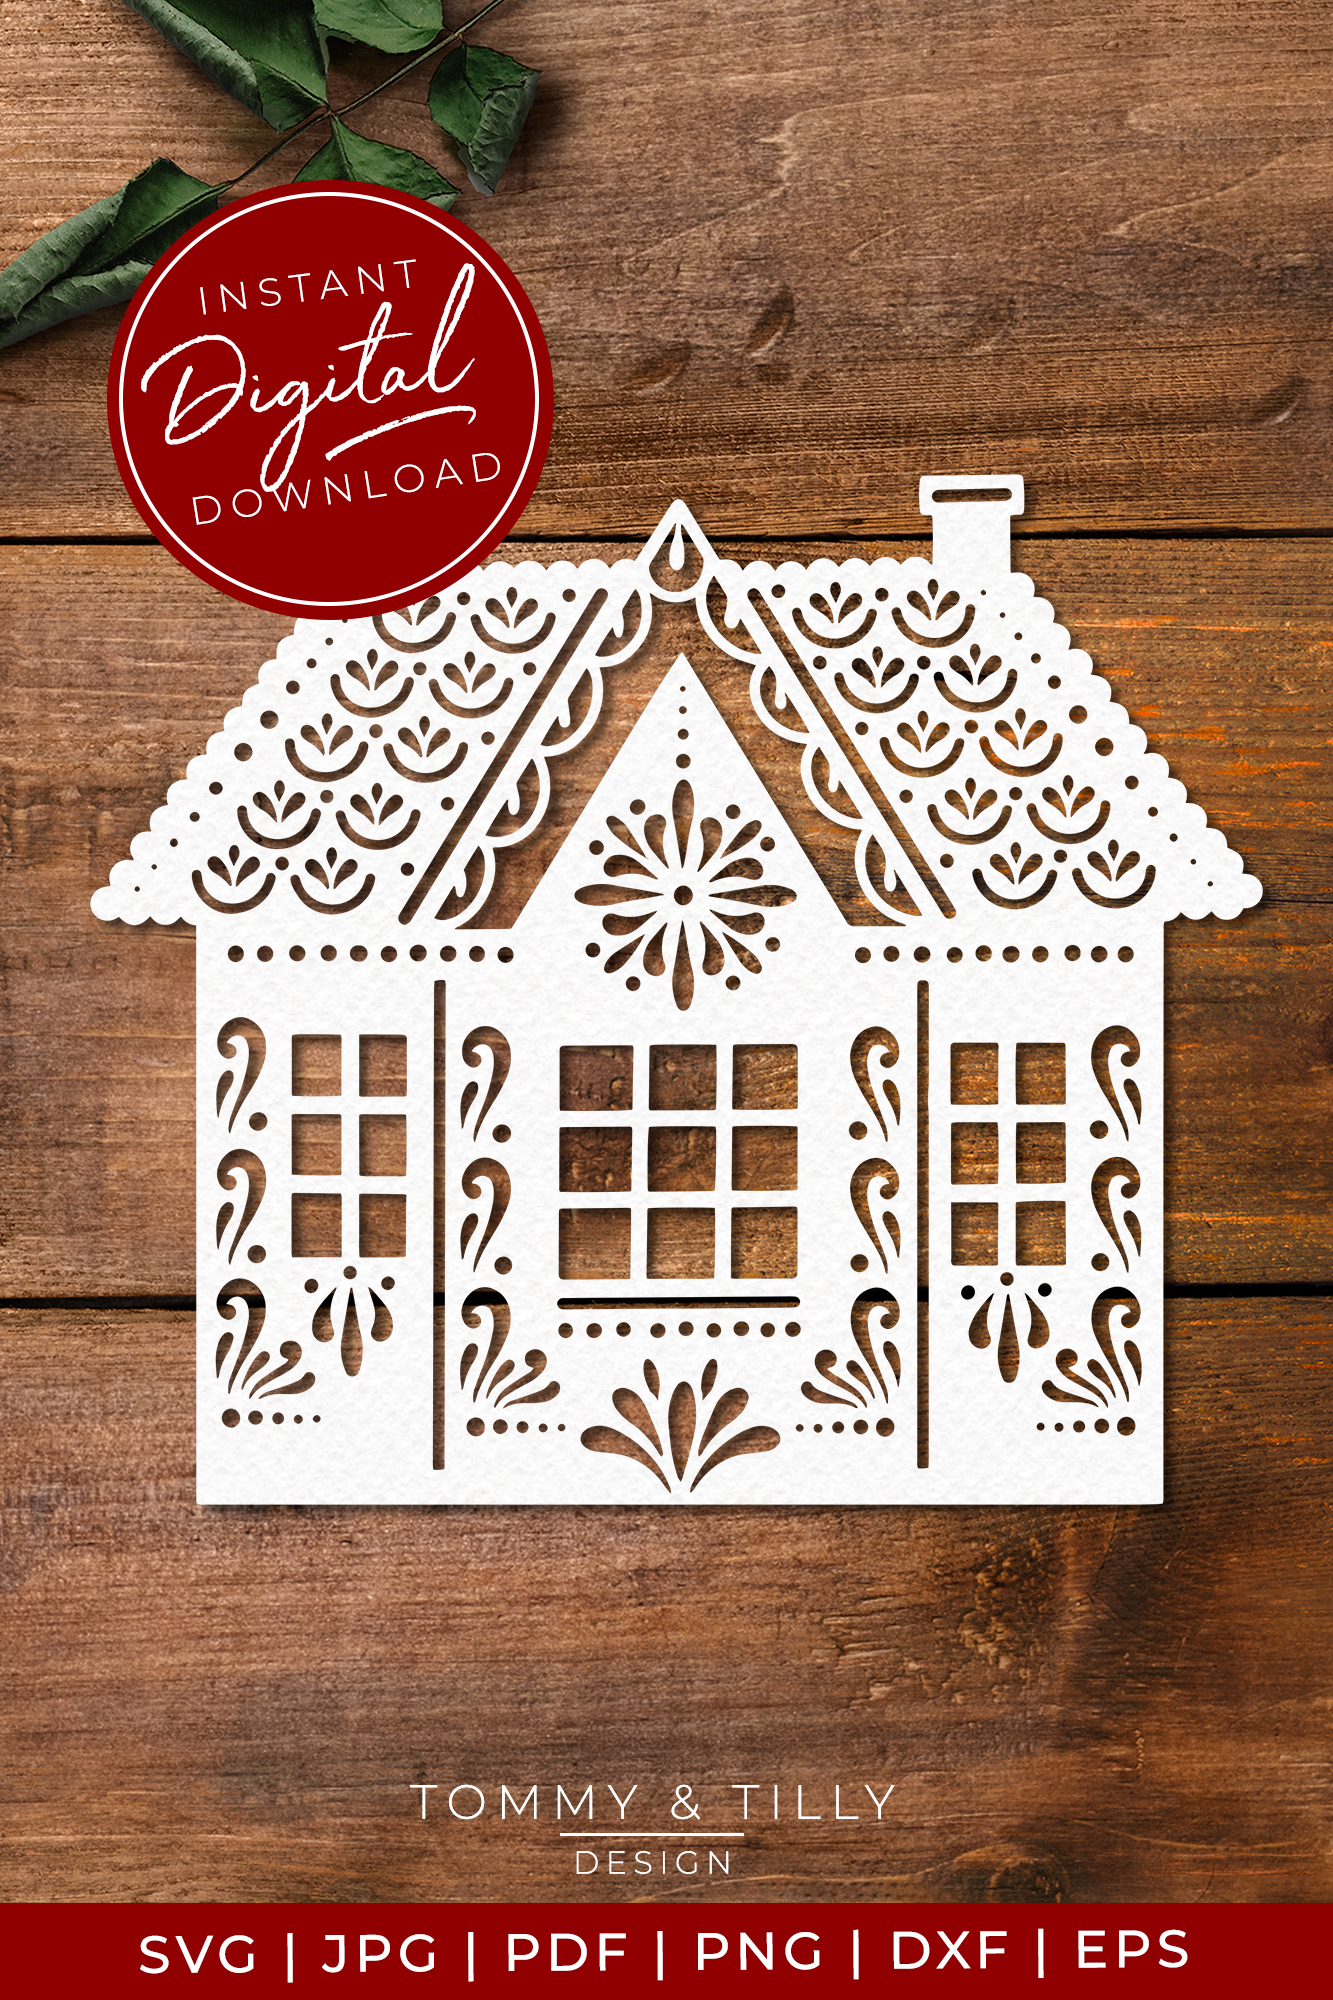 Intricate House No.2 - SVG EPS DXF PNG PDF JPG Cut File example image 4